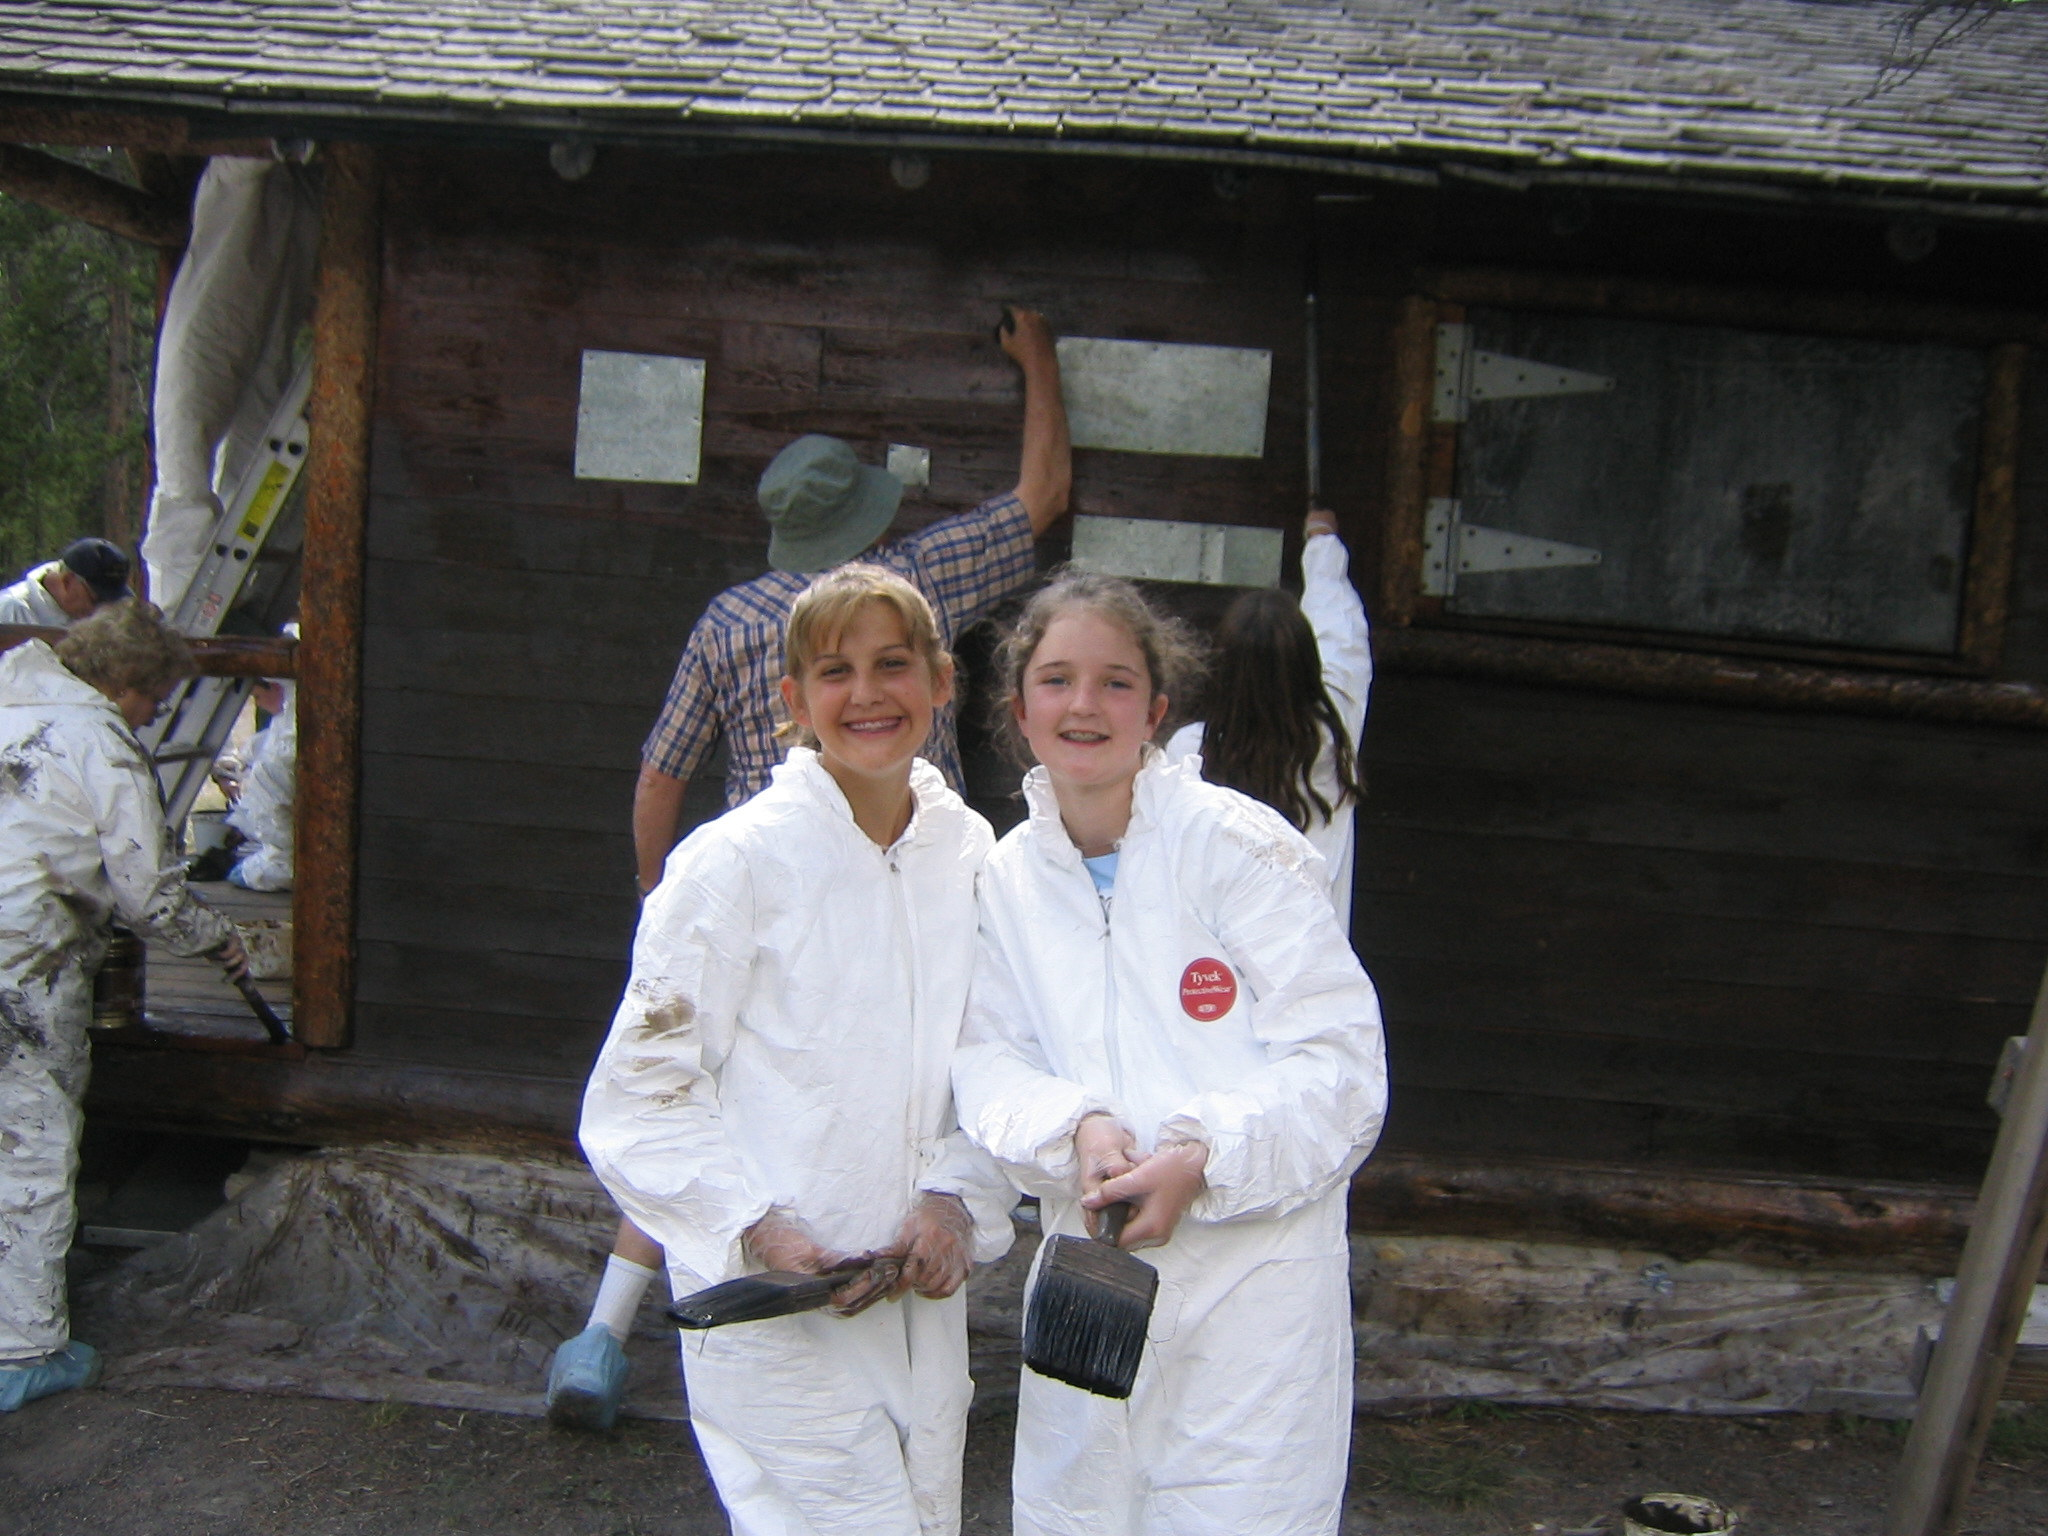 Two young guest volunteers at Yellowstone participate in staining a historic cabin.